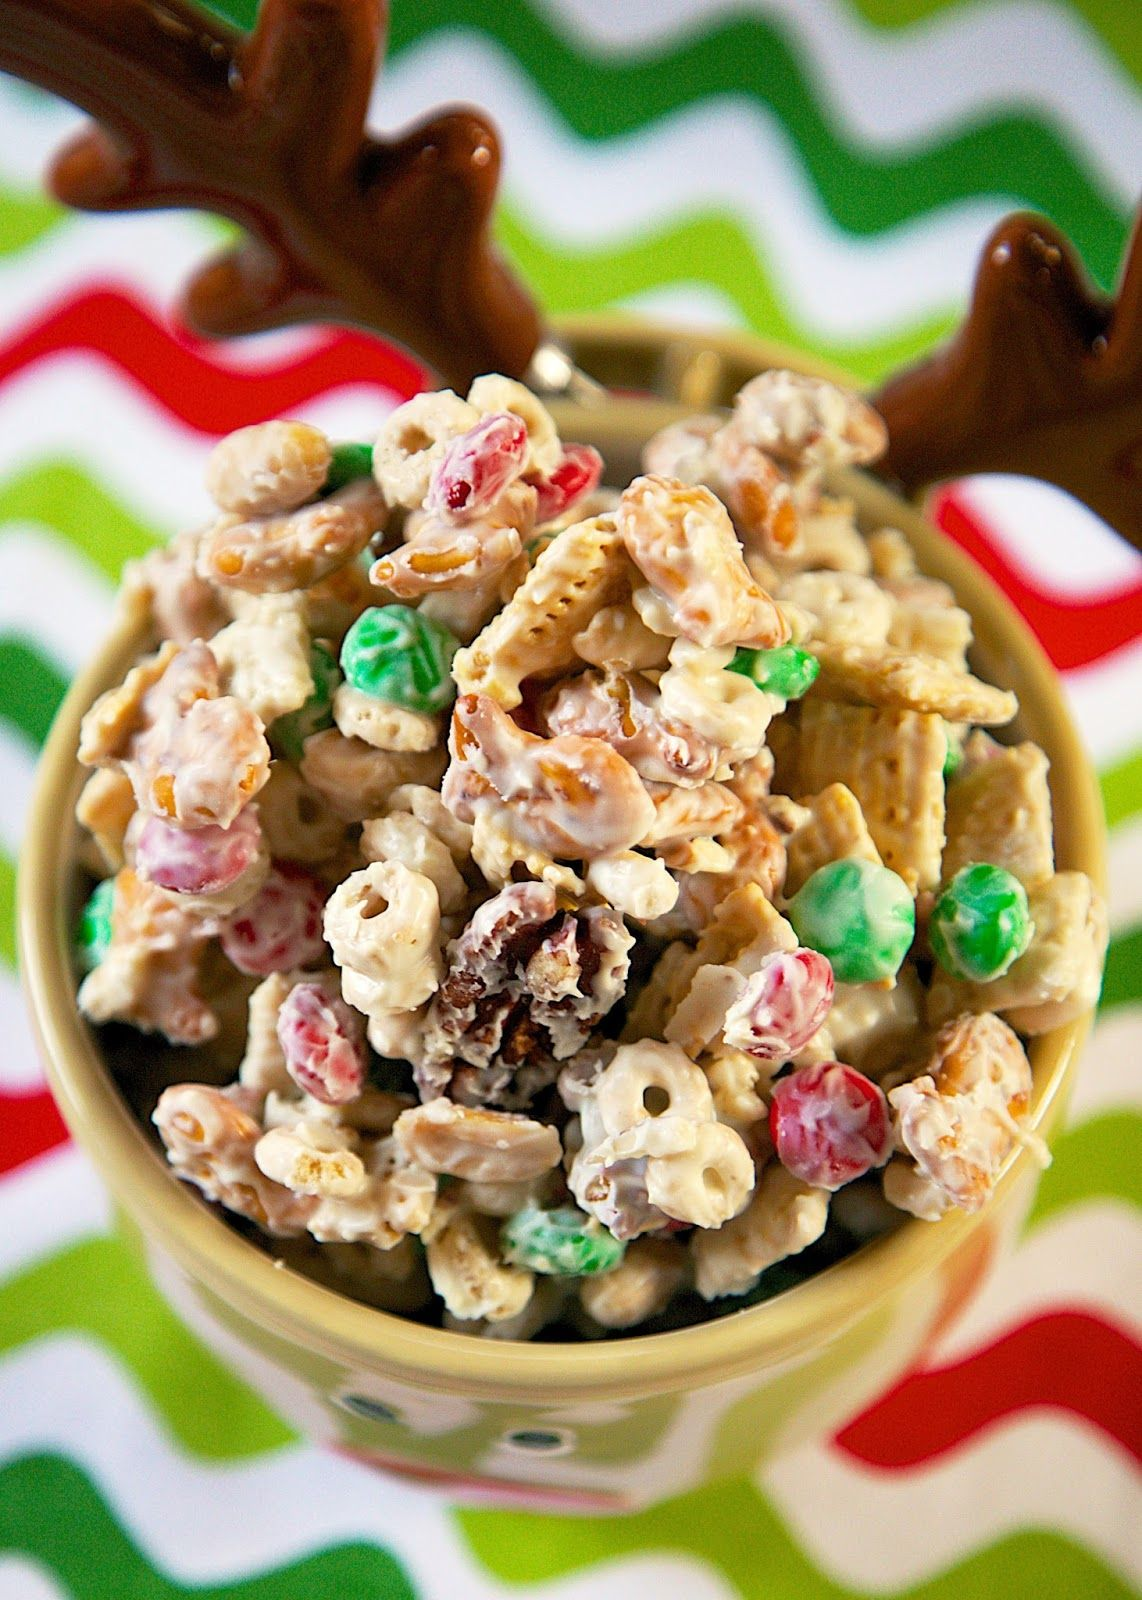 alton browns white trash mix white chocolate chex mix highly addictive makes great neighbor or co worker gifts - Christmas Chex Mix White Chocolate